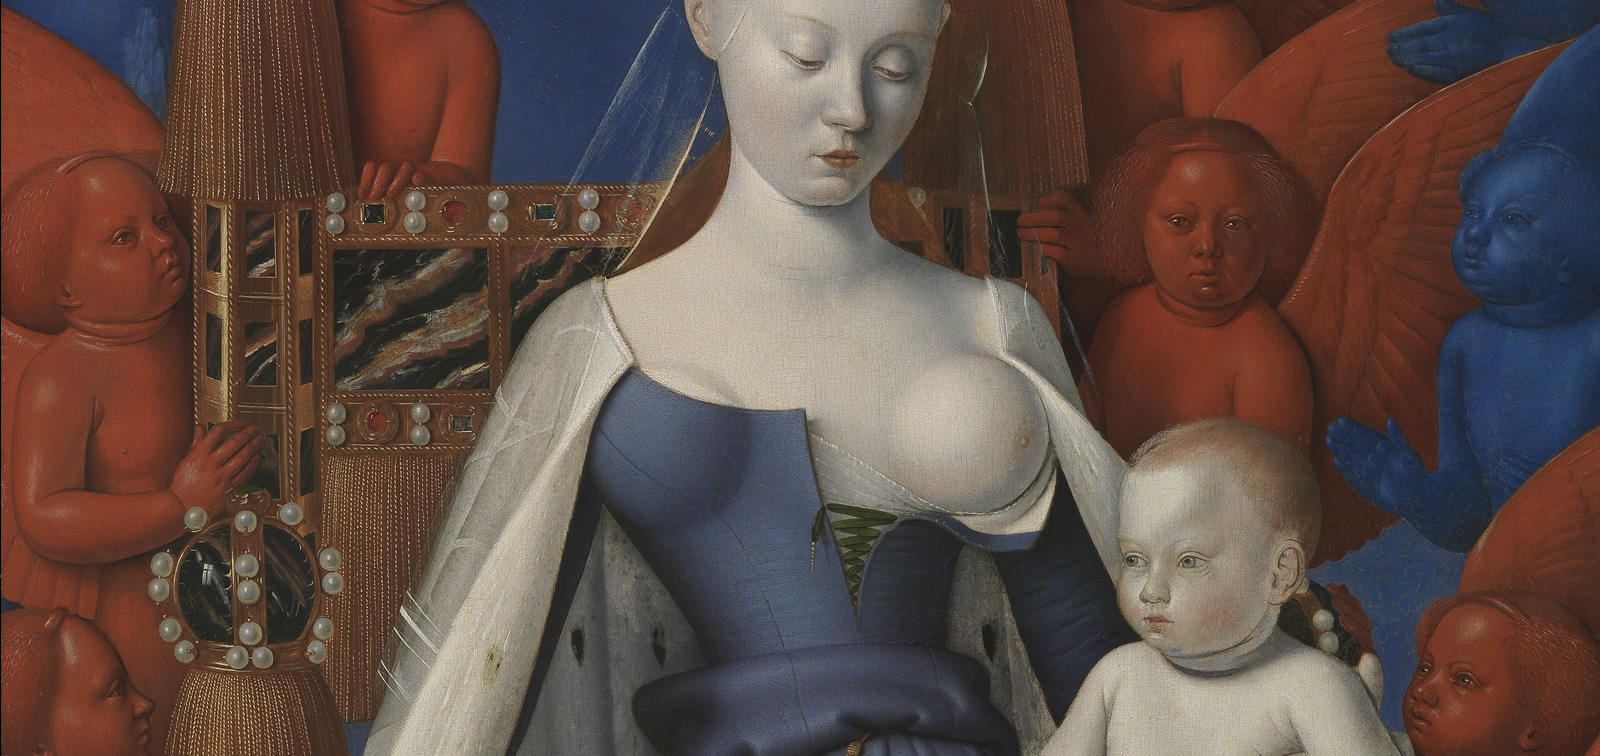 The invited work: The Virgin and Child with Angels, Jean Fouquet